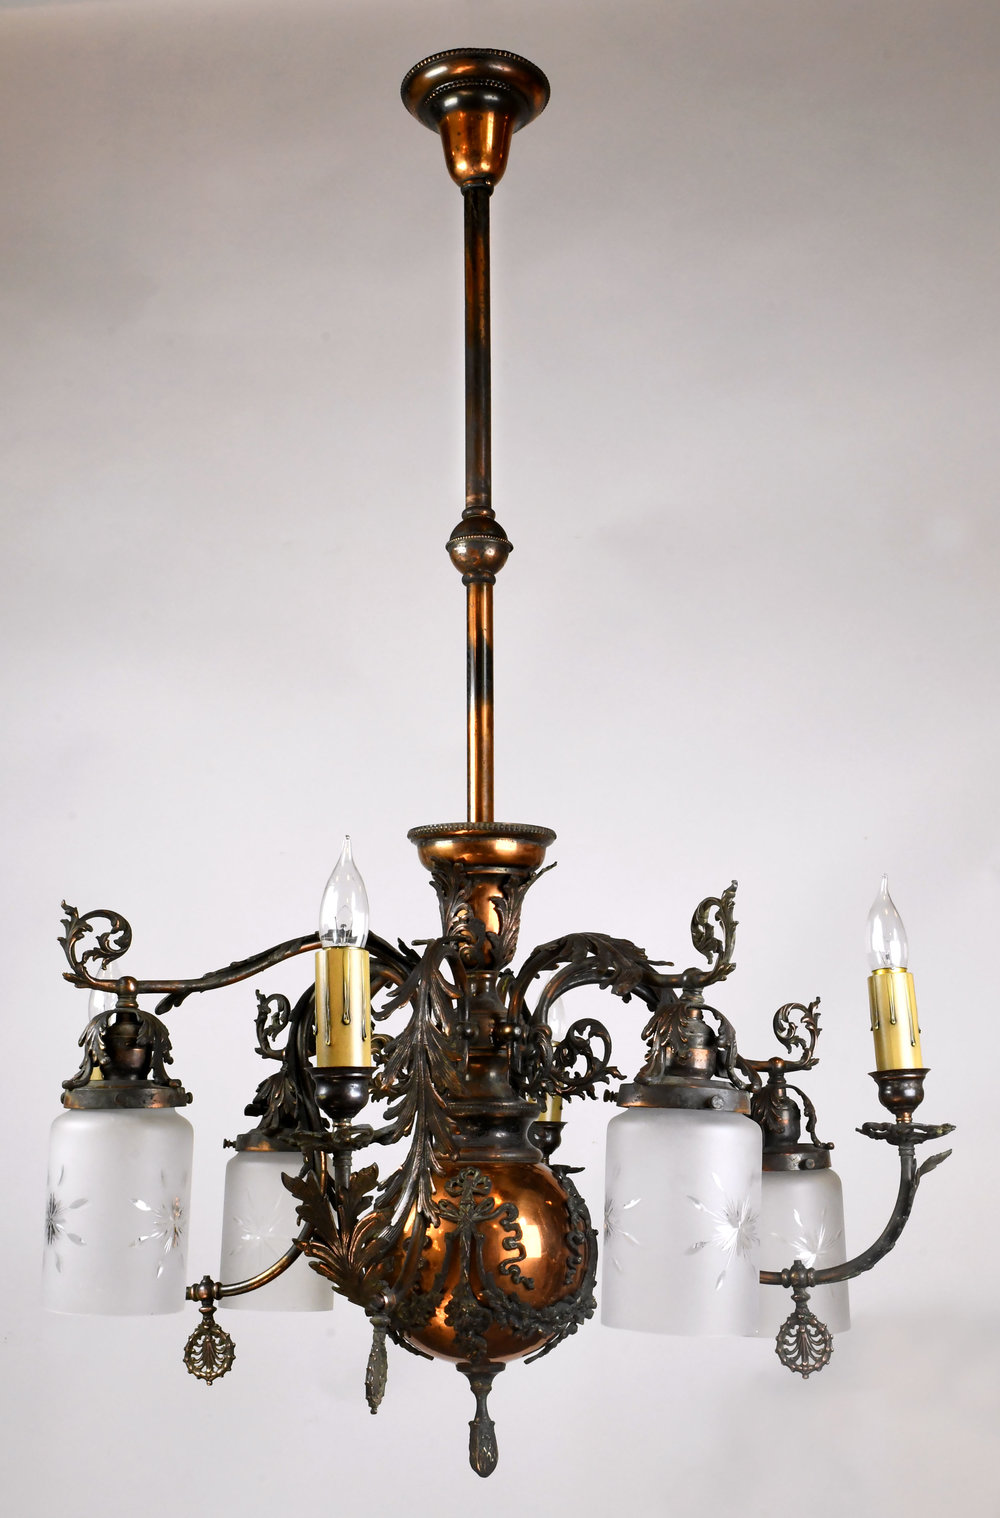 47471-gilt-satin-gas-electric-chandelier-full-view.jpg